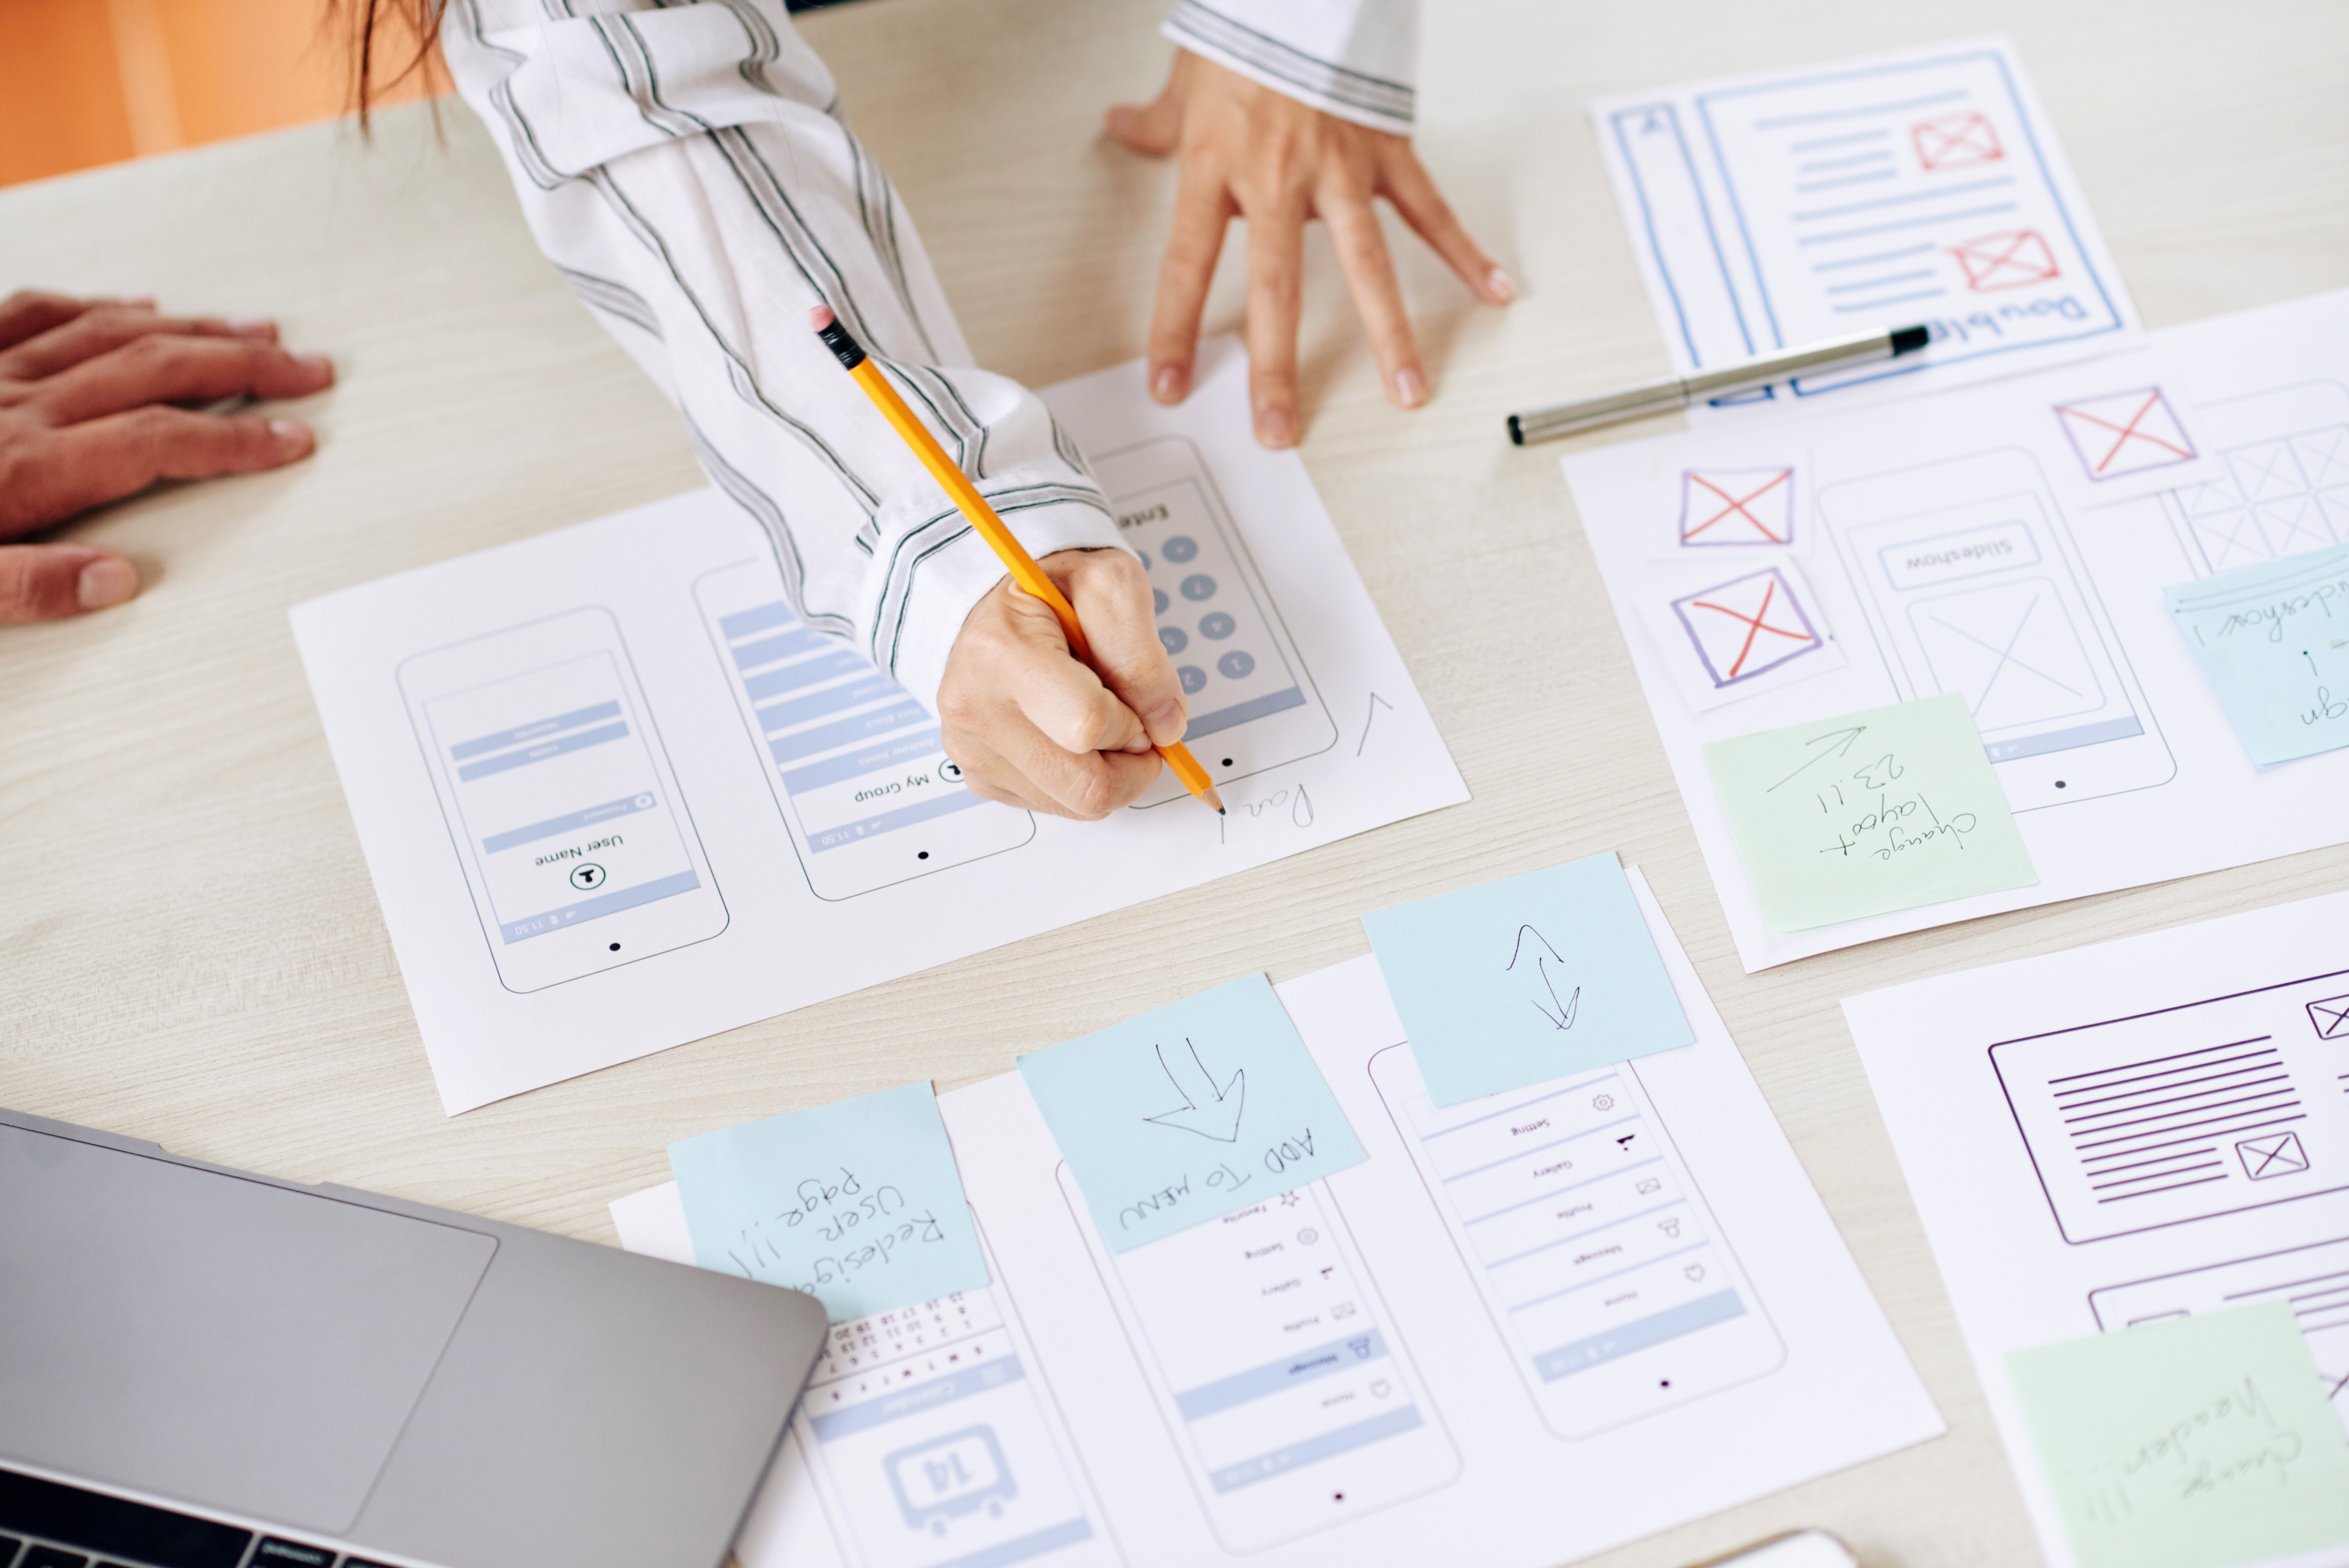 Stages of Design Process